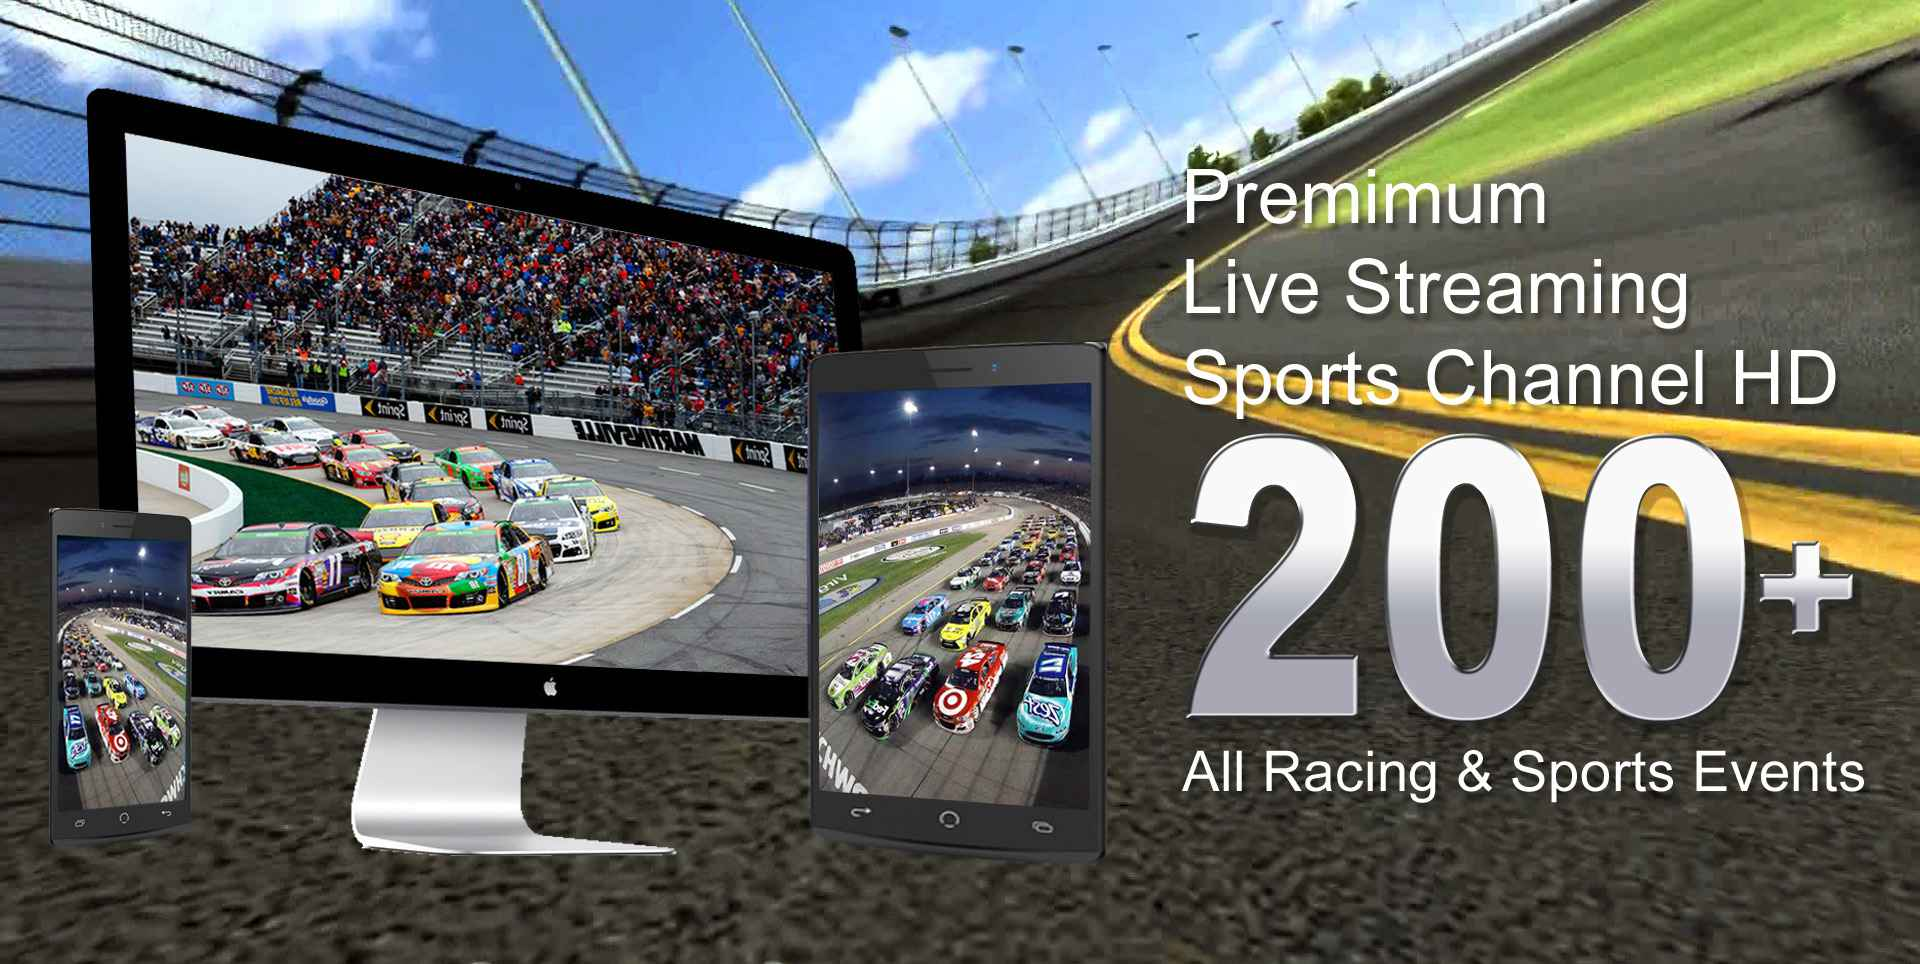 Sprint Cup Brickyard 400 live